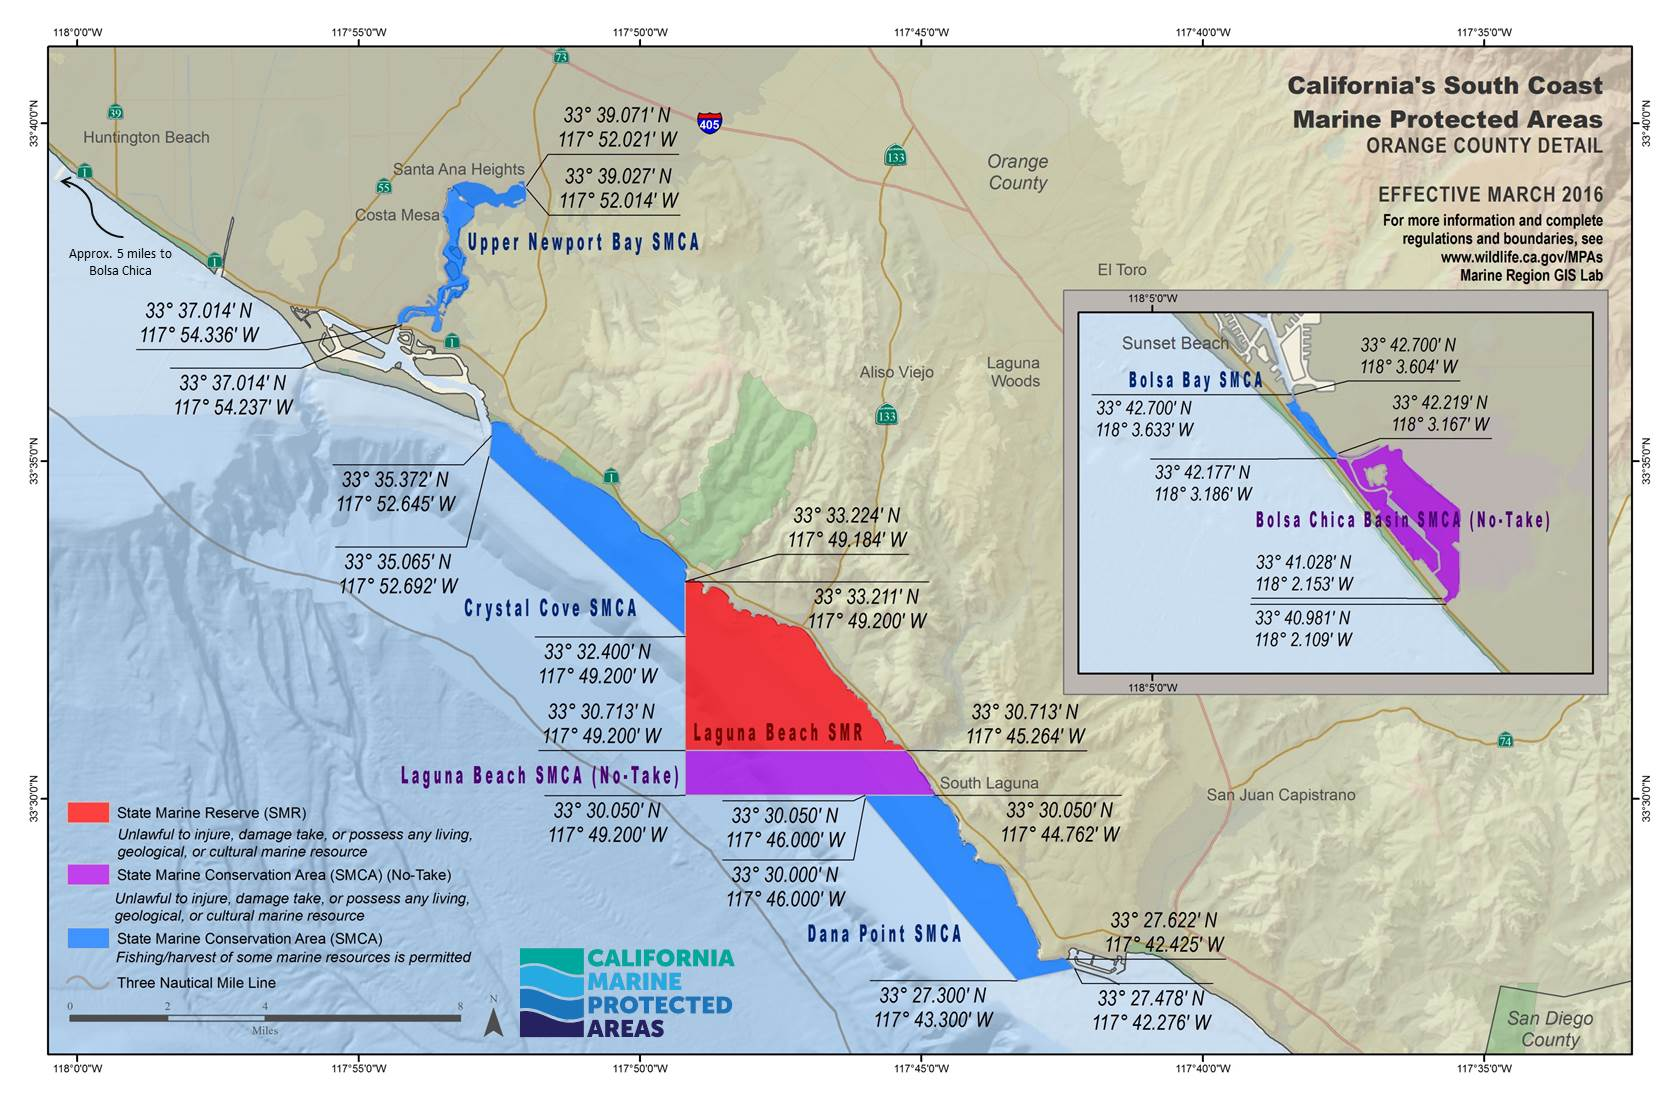 Map of Orange County Marine Protected Areas